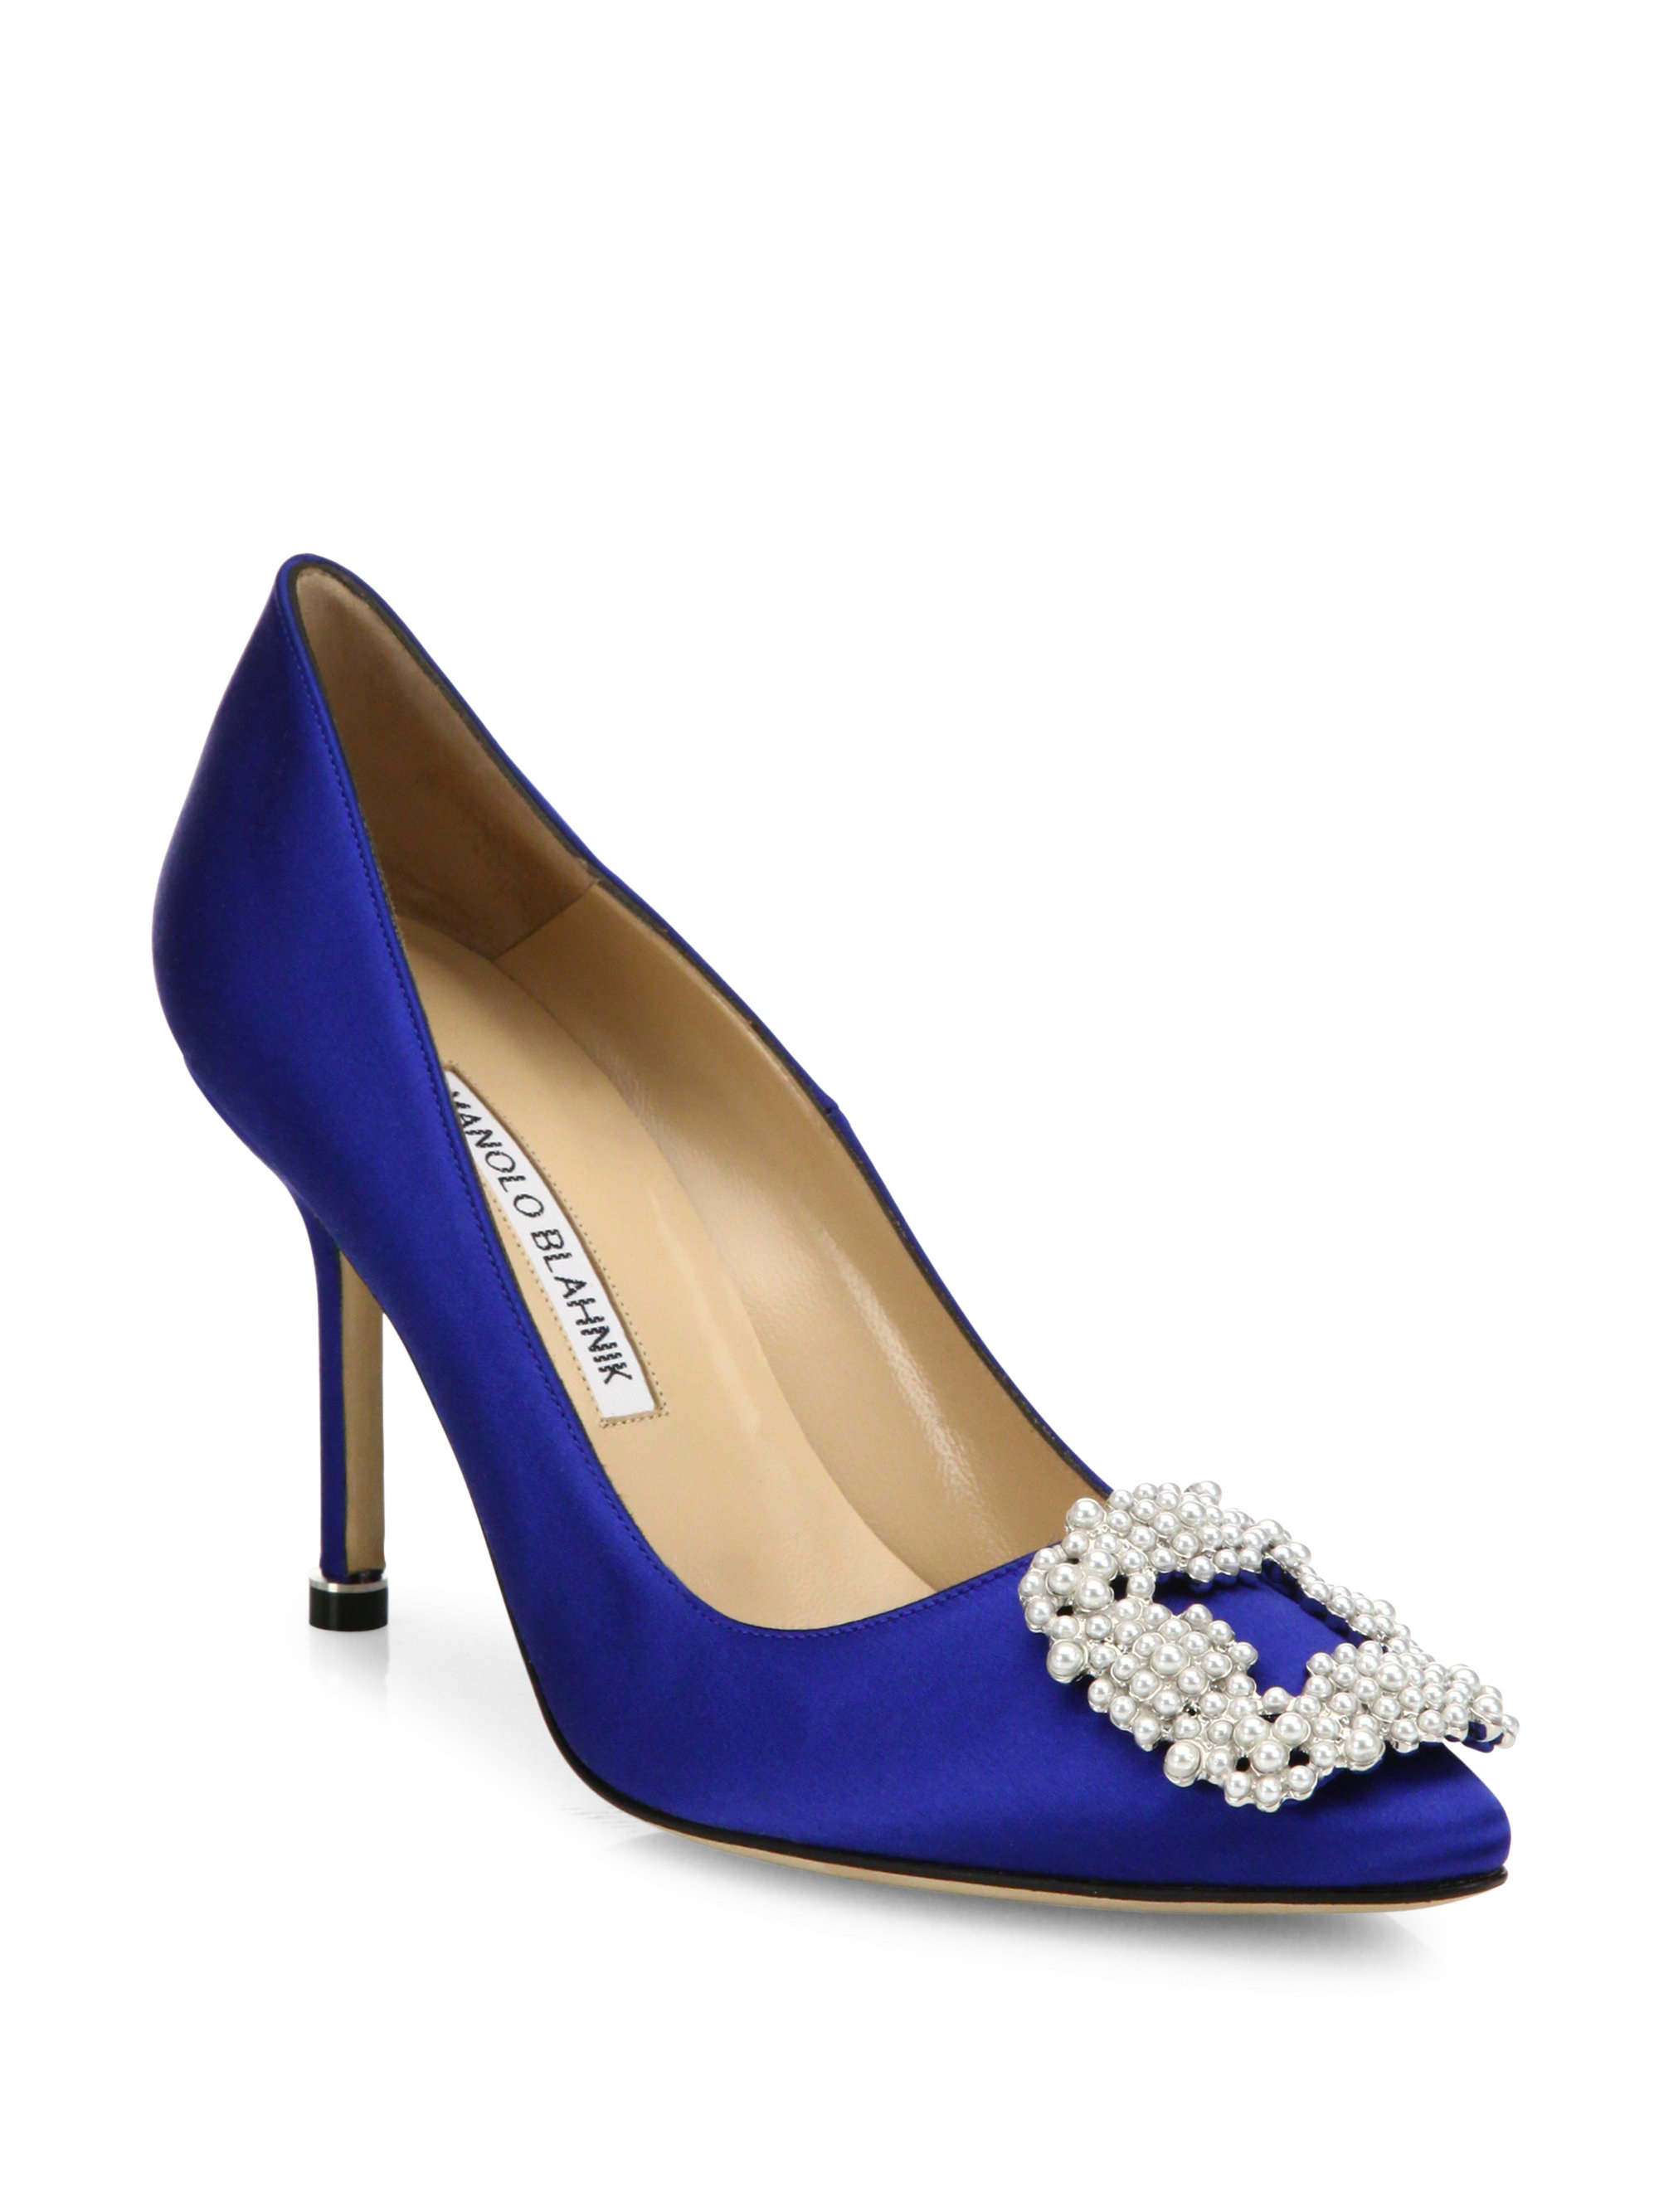 608799aa2 Gallery. Previously sold at: Saks Fifth Avenue · Women's Manolo Blahnik  Hangisi Shoes